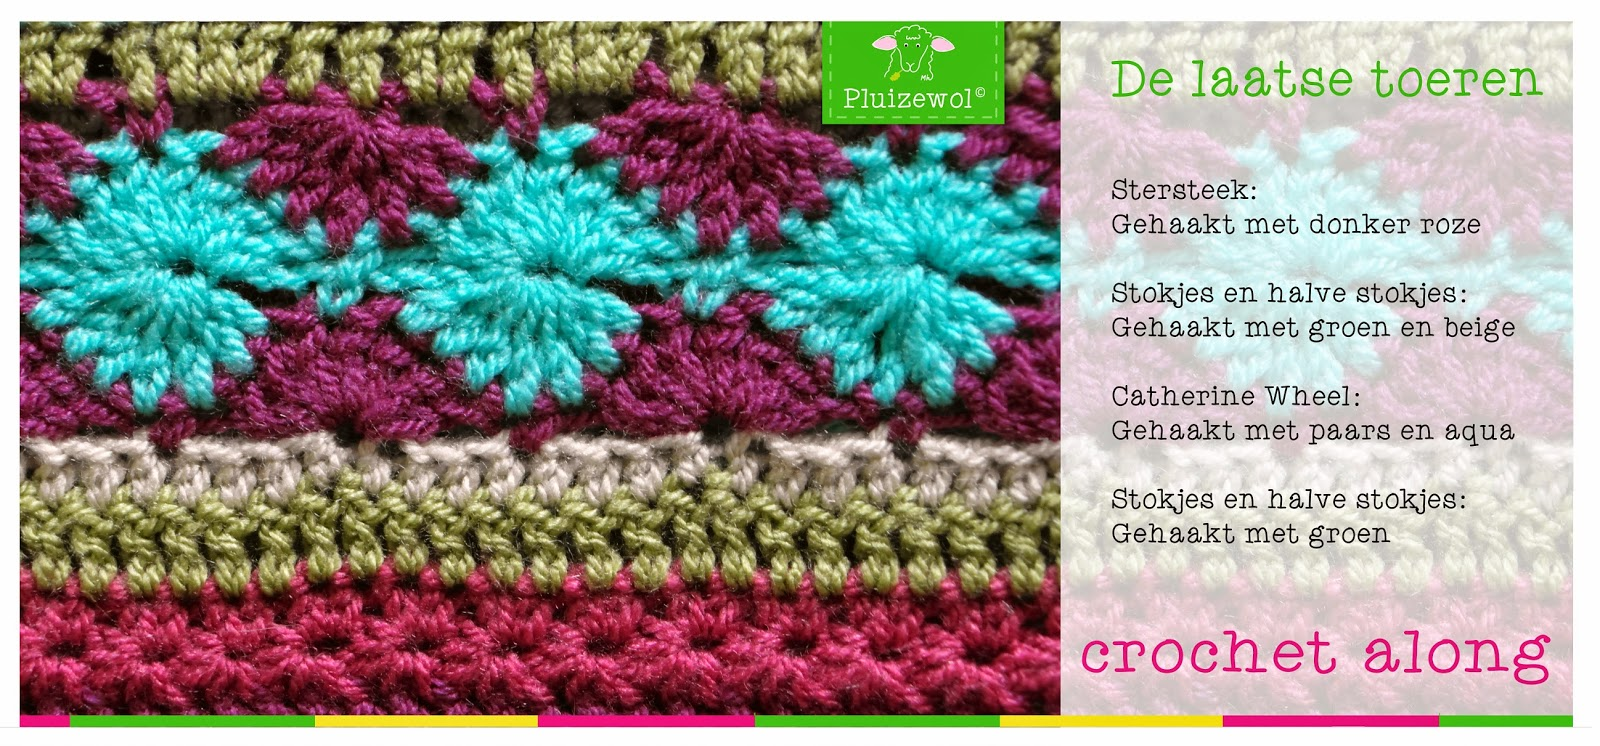 Crochet Along : Crochet Along 2014 Related Keywords & Suggestions - Crochet Along 2014 ...